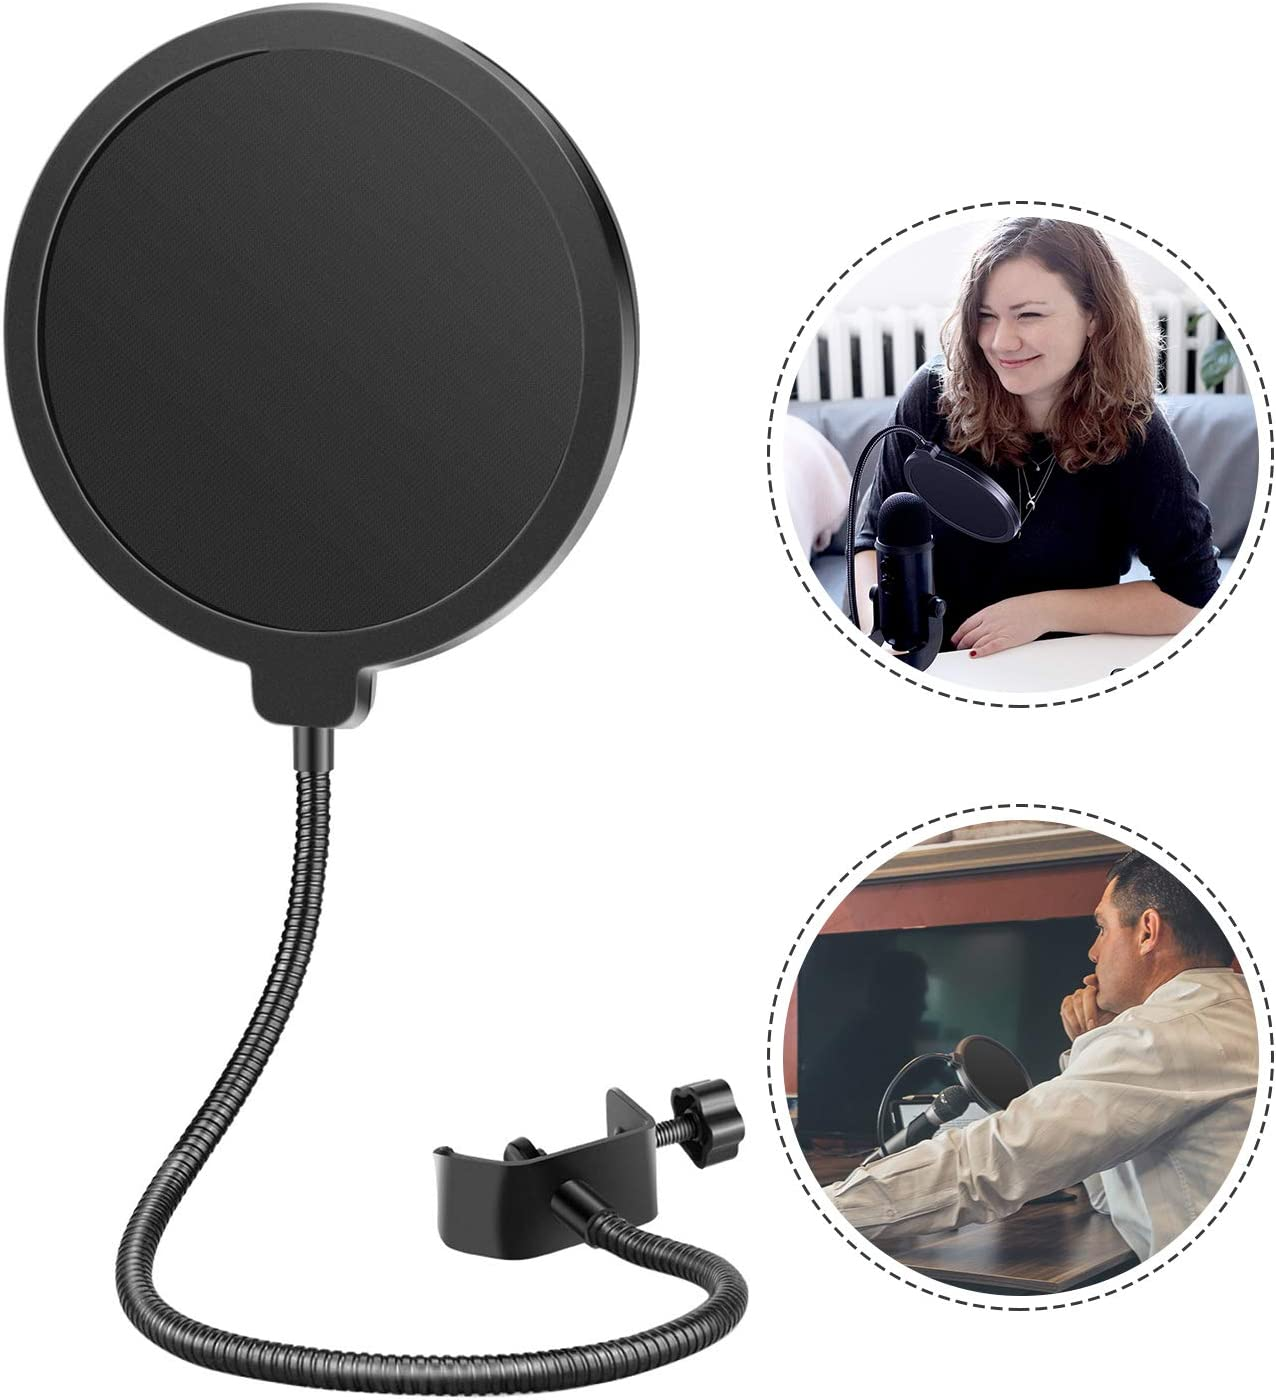 Neewer Professional Microphone Pop Filter Shield Compatible with Blue Yeti and Any Other Microphone, Dual Layered Wind Pop Screen With A Flexible 360 Degree Gooseneck Clip Stabilizing Arm